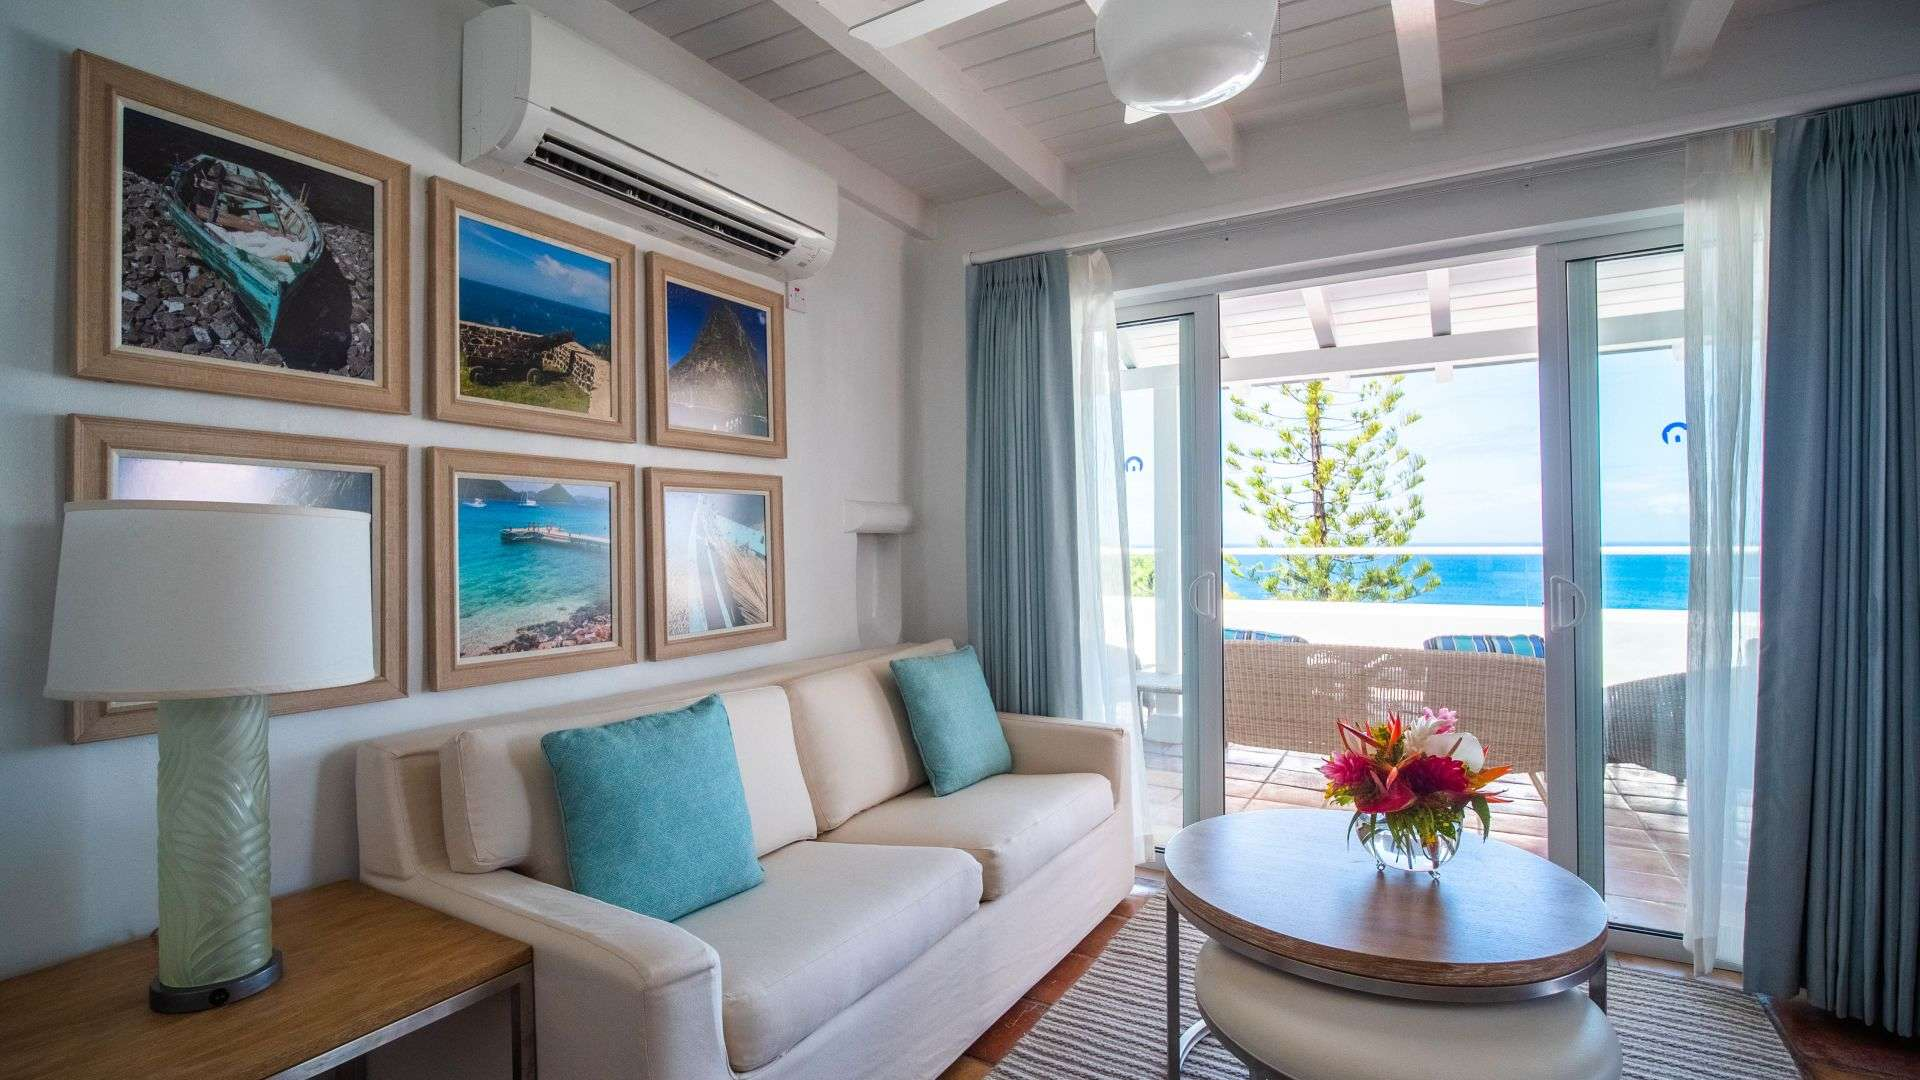 - One Bedroom Ocean View Villas - Image 1/10